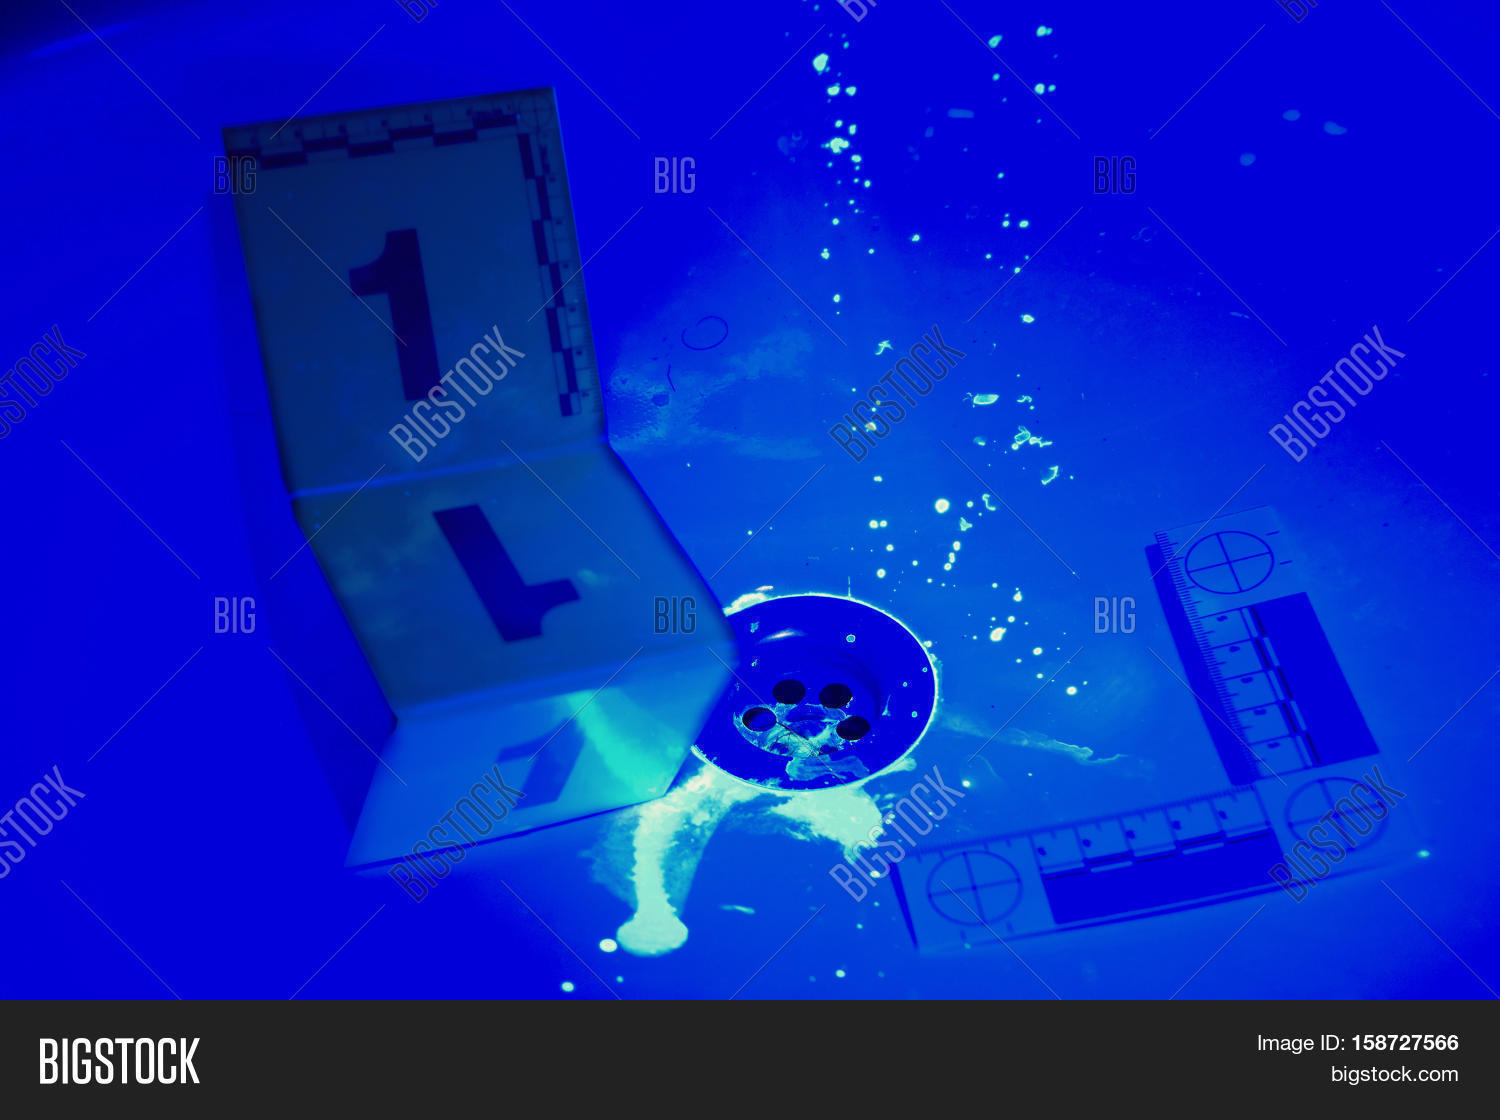 uv light bathroom collecting evidences image amp photo free trial bigstock 14898